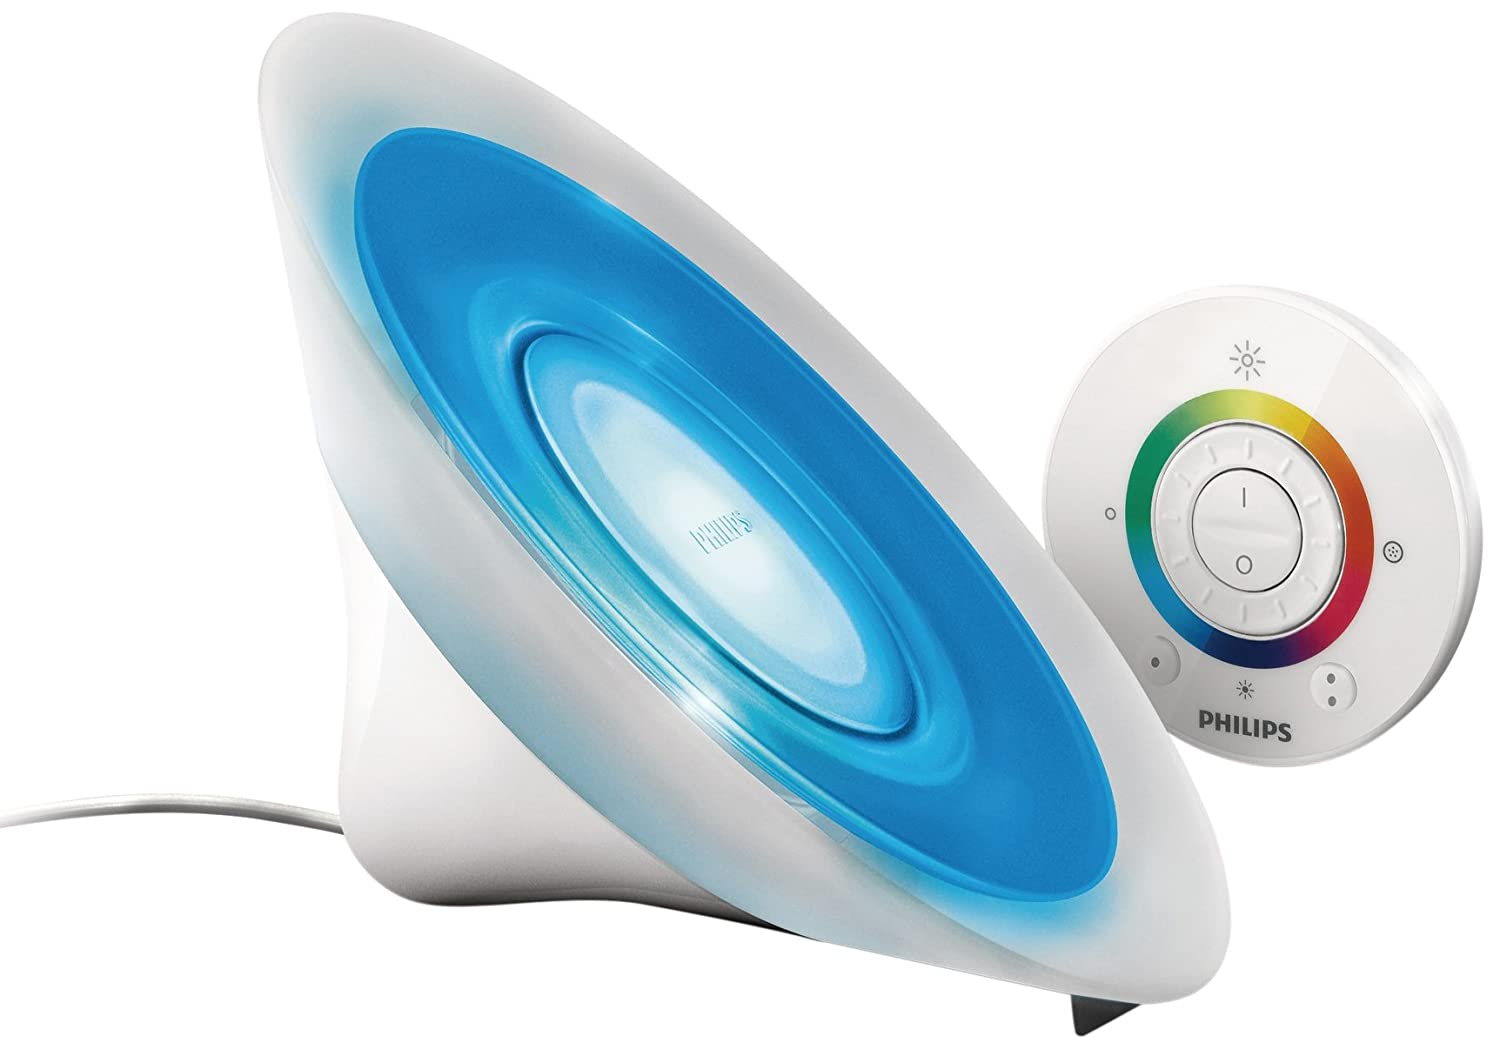 Philips livingcolors aura colour changing mood light white philips livingcolors aura colour changing mood light white integrated 1 x 8 watts led bulb remote control amazon lighting parisarafo Image collections